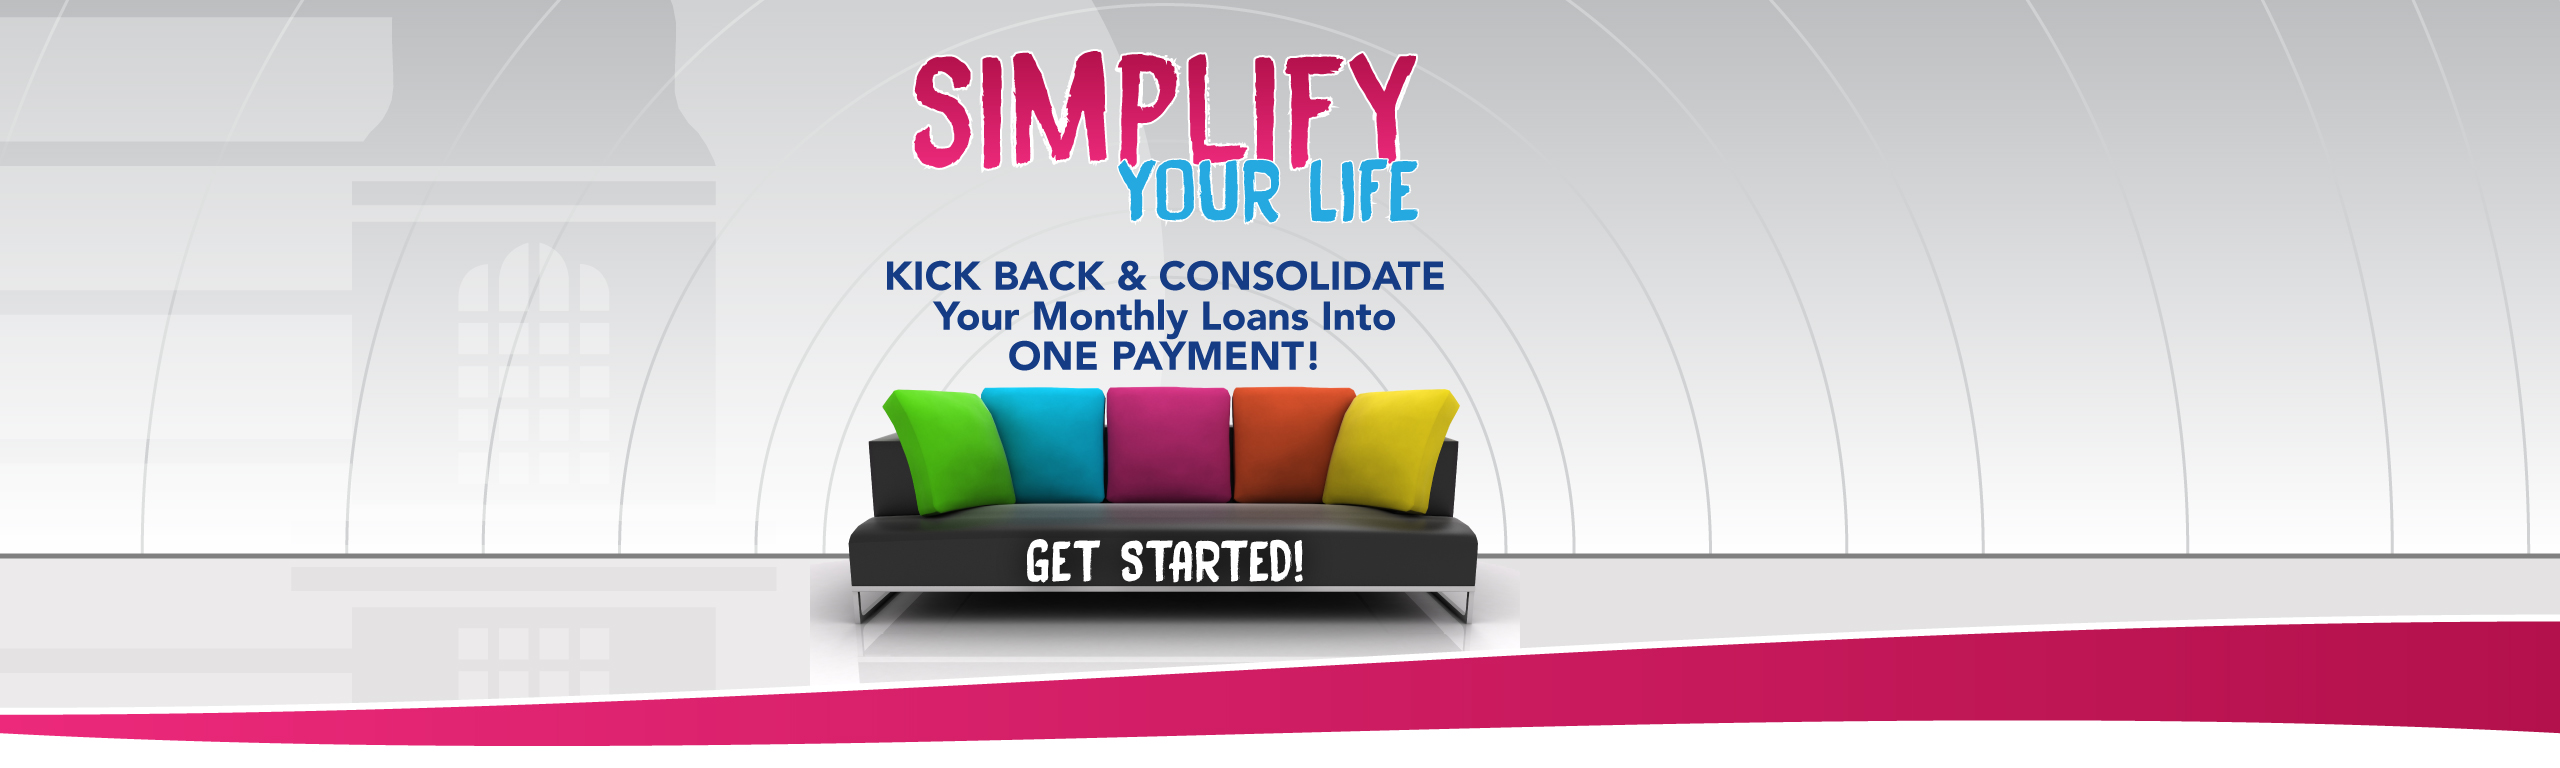 Simplify Your Life: Kick Back and Consolidate Your Monthly Loan Payments into One Payment!